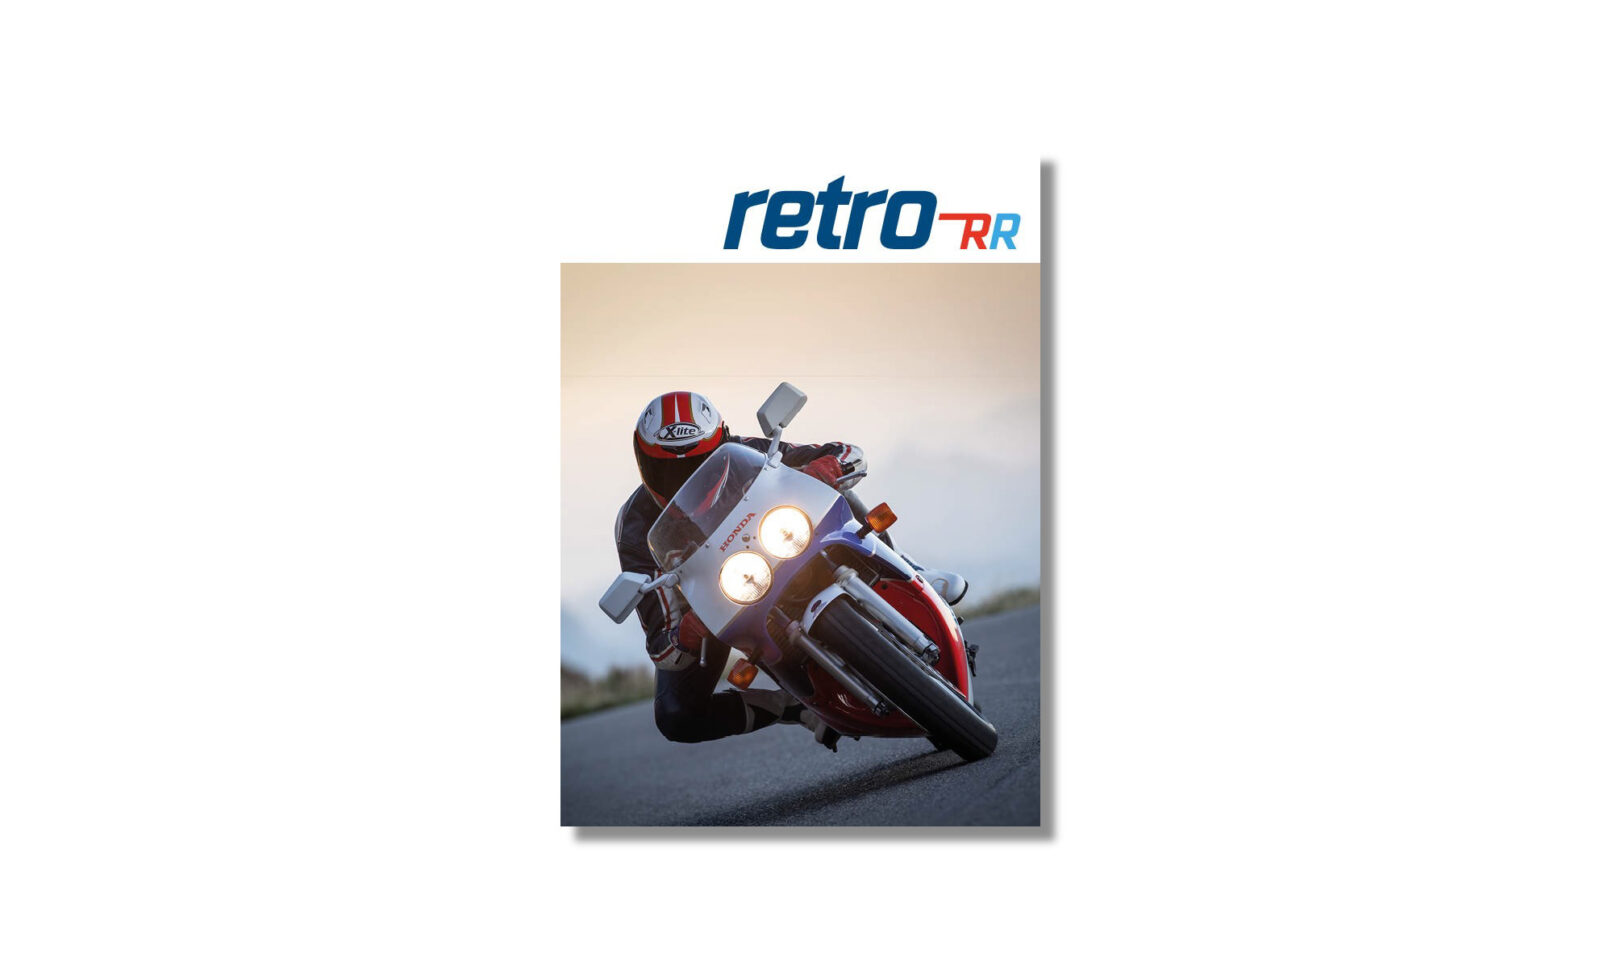 Retro-RR Magazine - A Celebration of the Golden Age of the Superbike